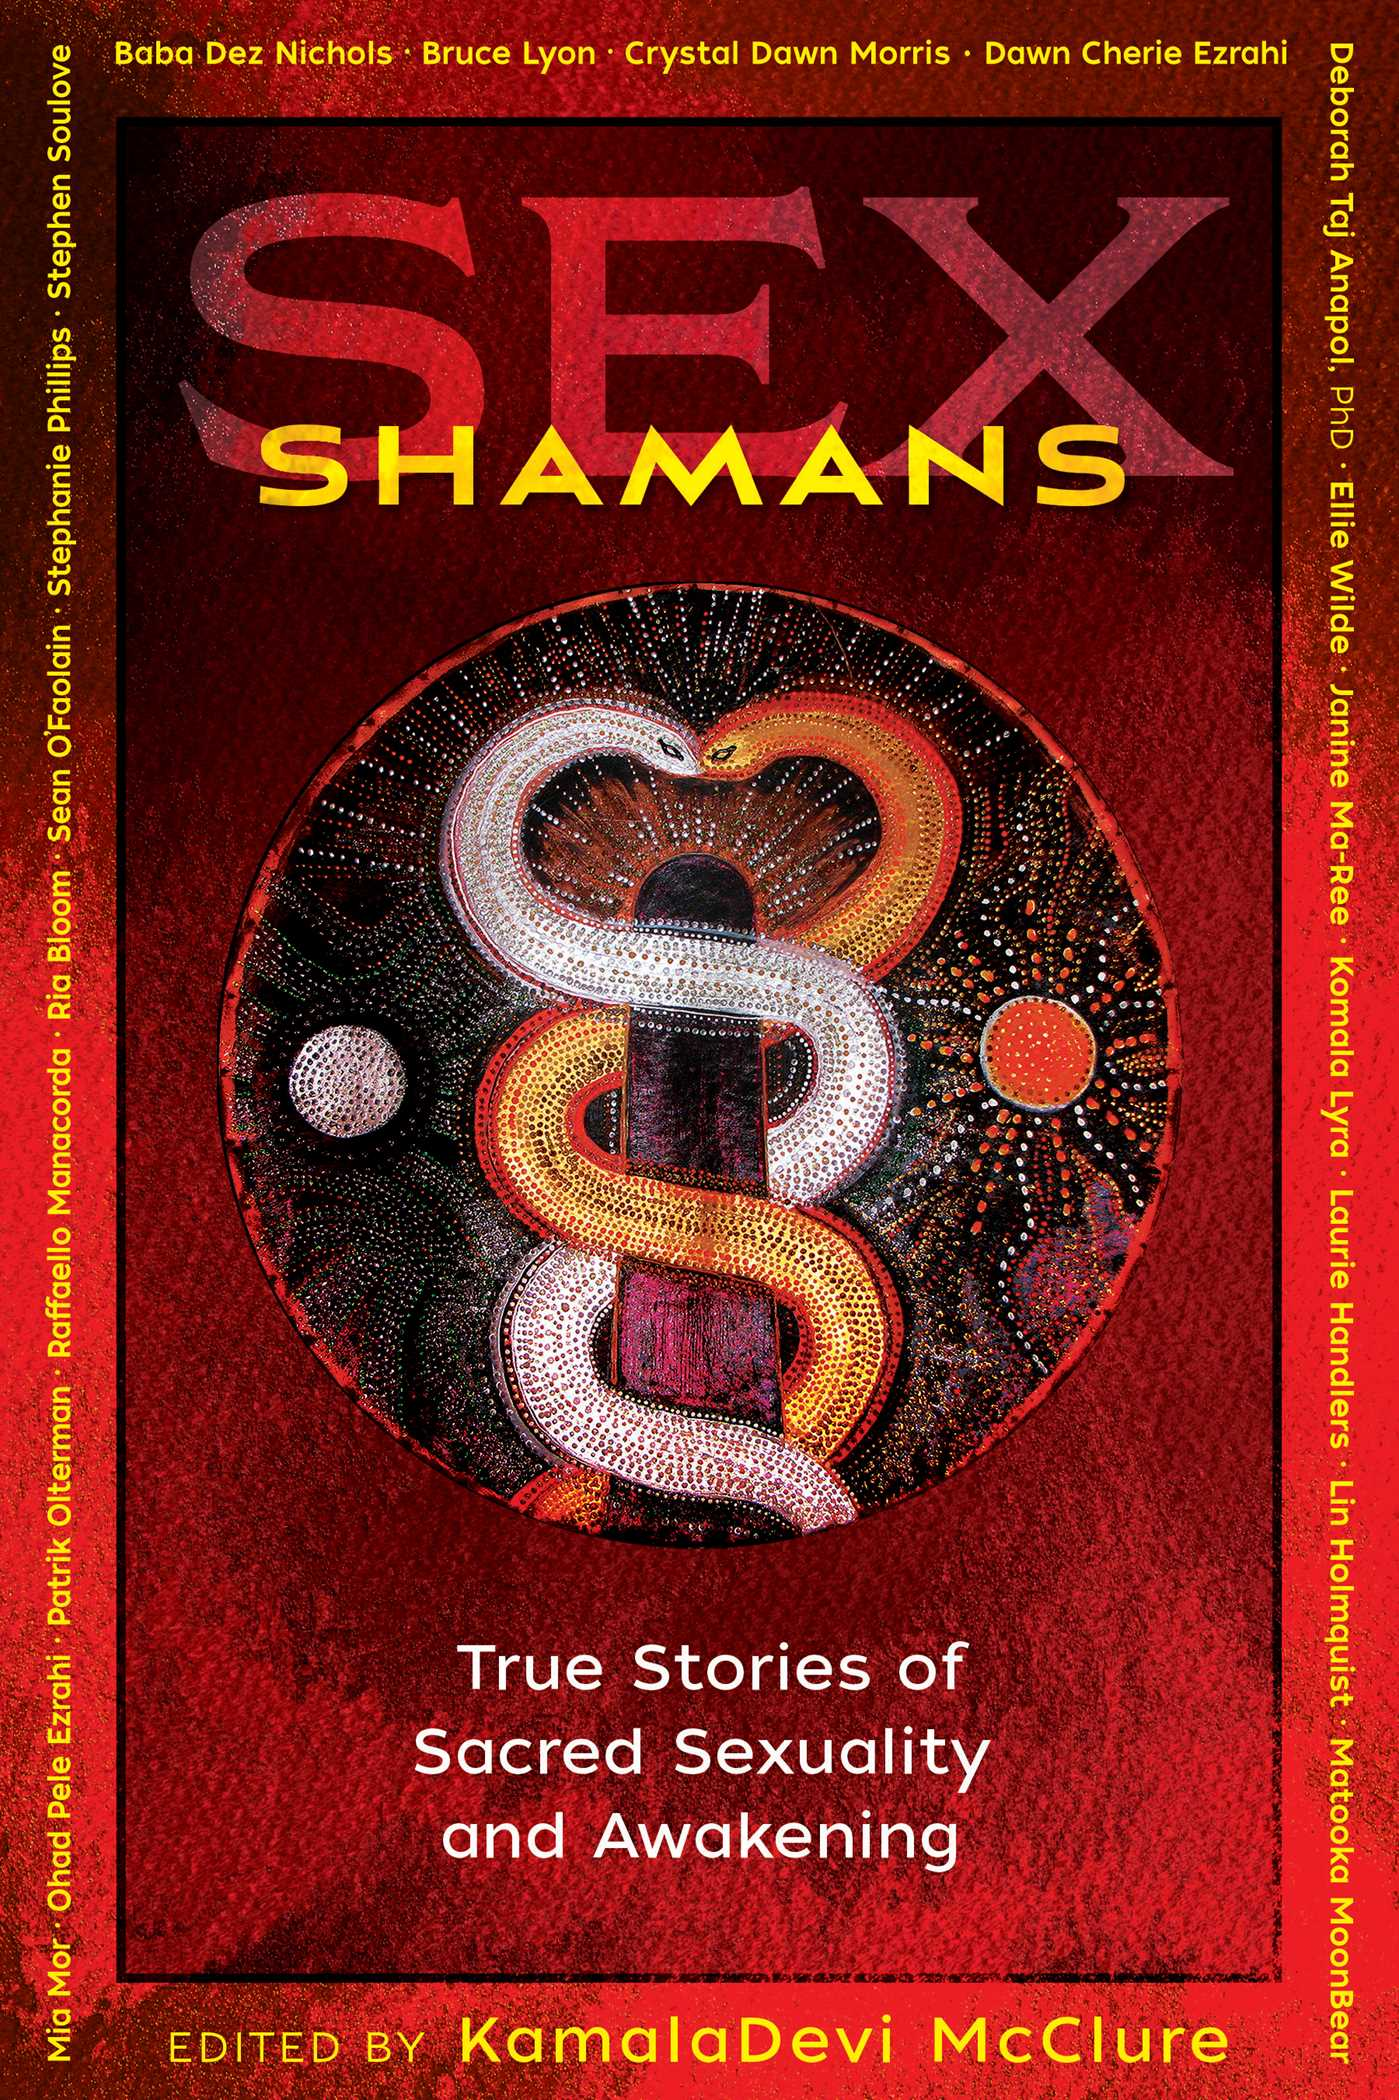 Sex Shamans | Book by KamalaDevi McClure | Official